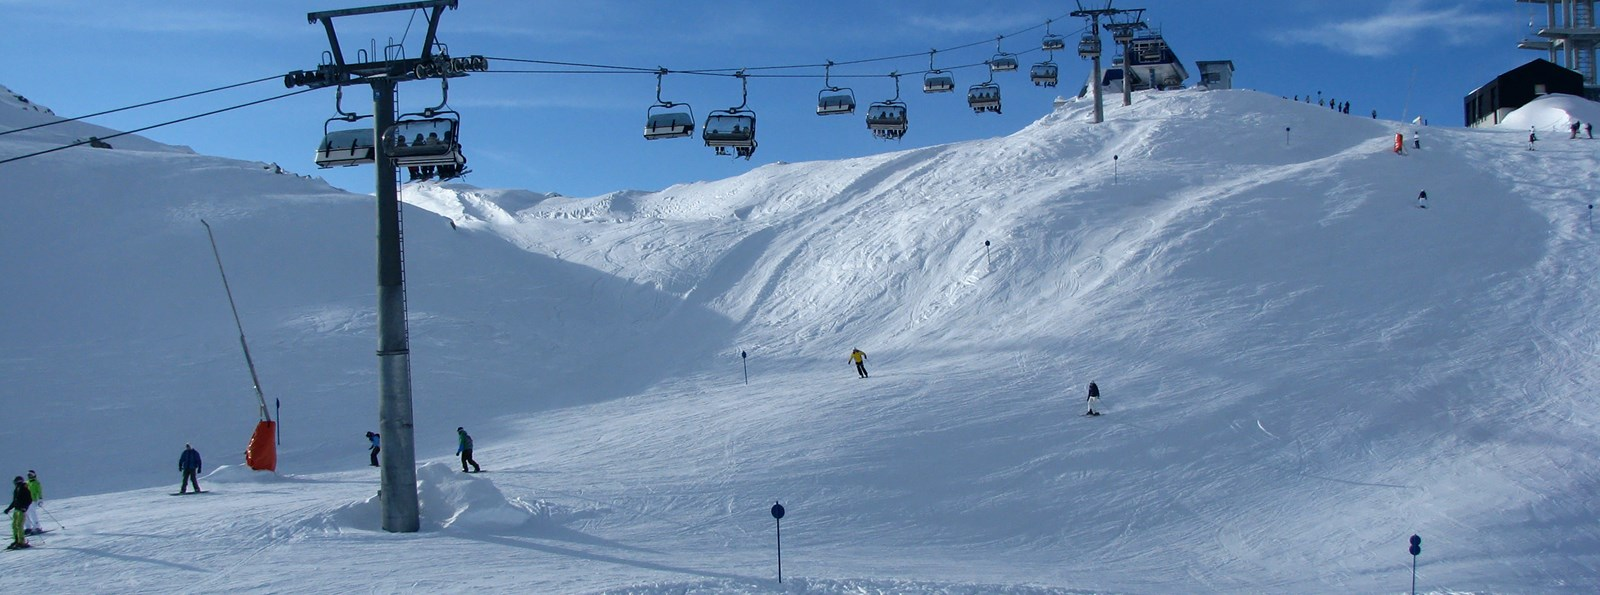 Incentive Travel - Skiing in St Anton